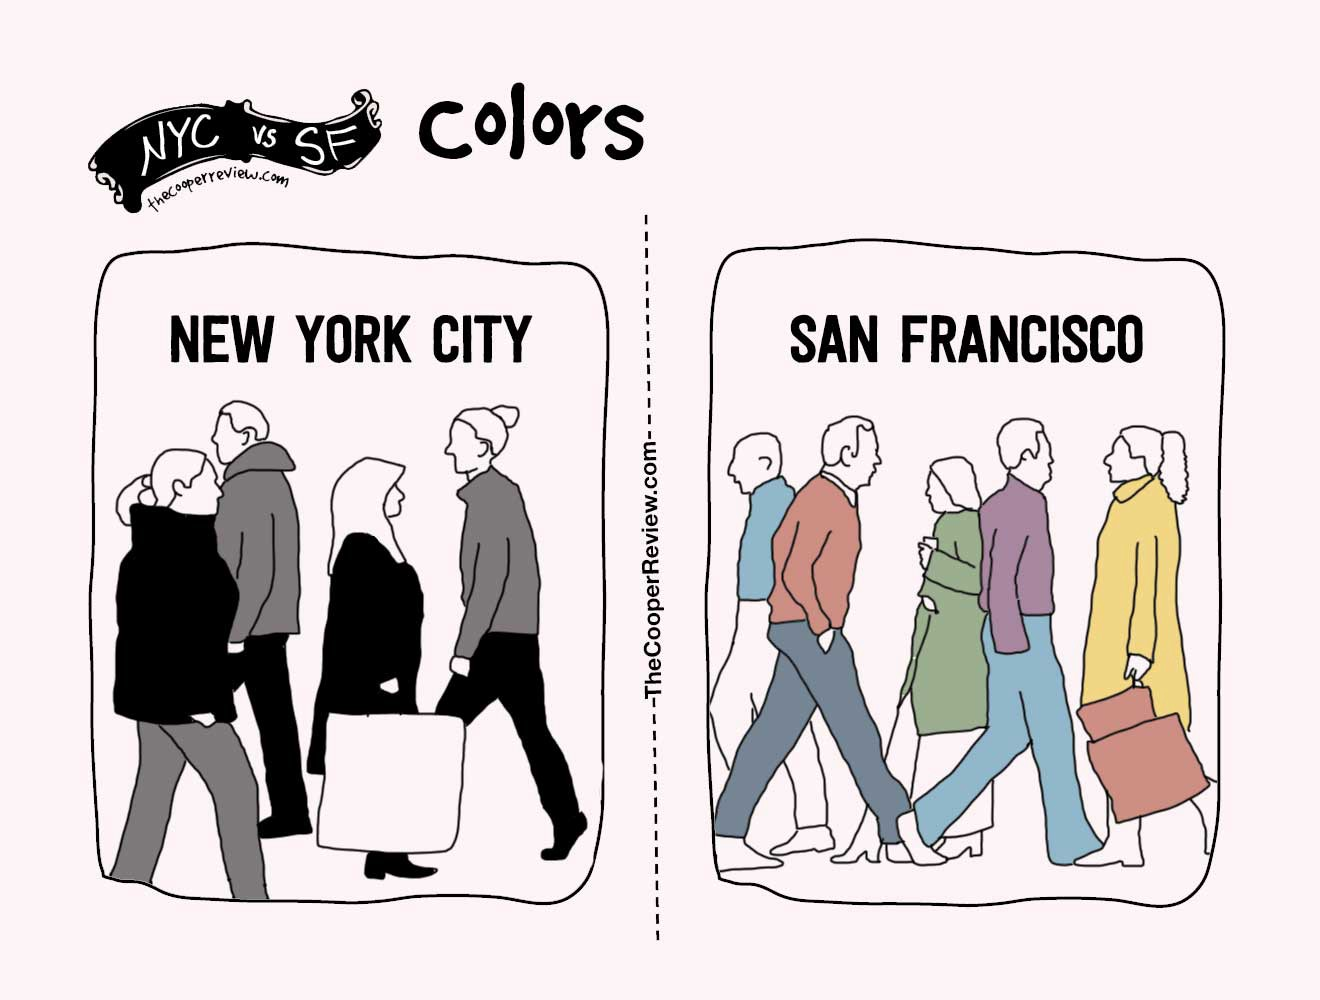 san francisco vs new york